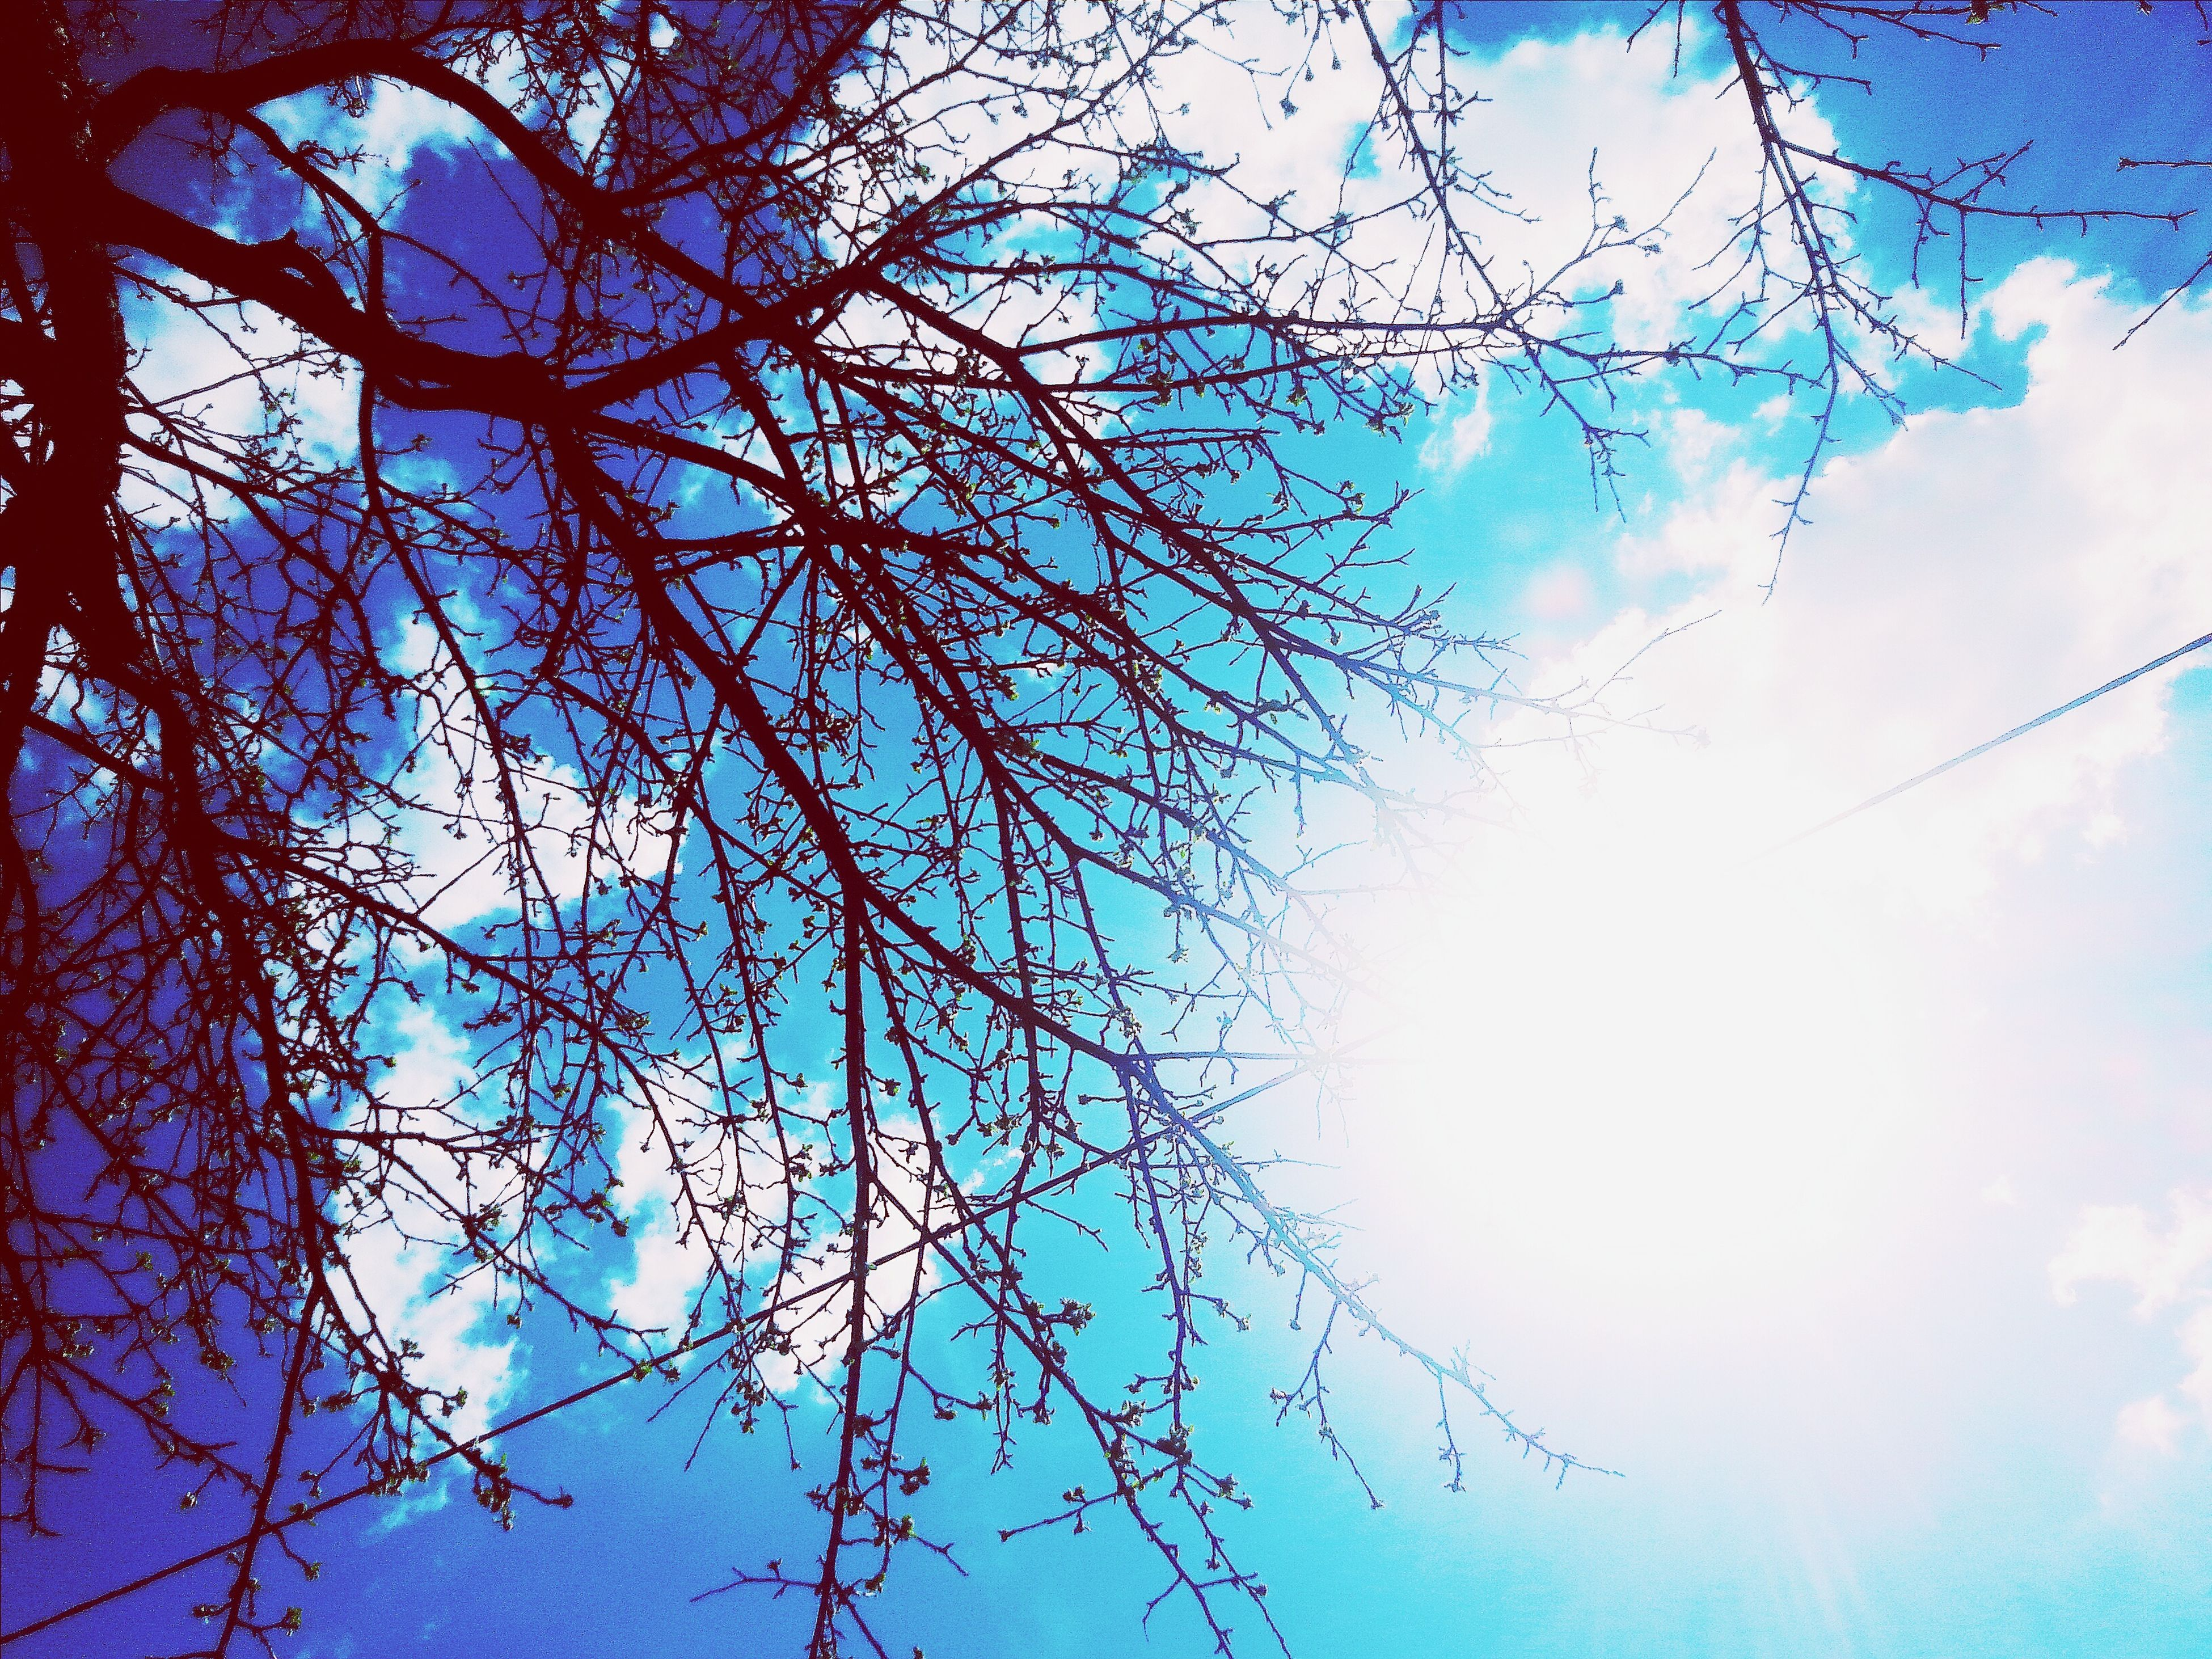 low angle view, branch, sky, tree, bare tree, blue, nature, cloud - sky, beauty in nature, growth, silhouette, cloud, tranquility, outdoors, no people, day, high section, scenics, backgrounds, sunlight